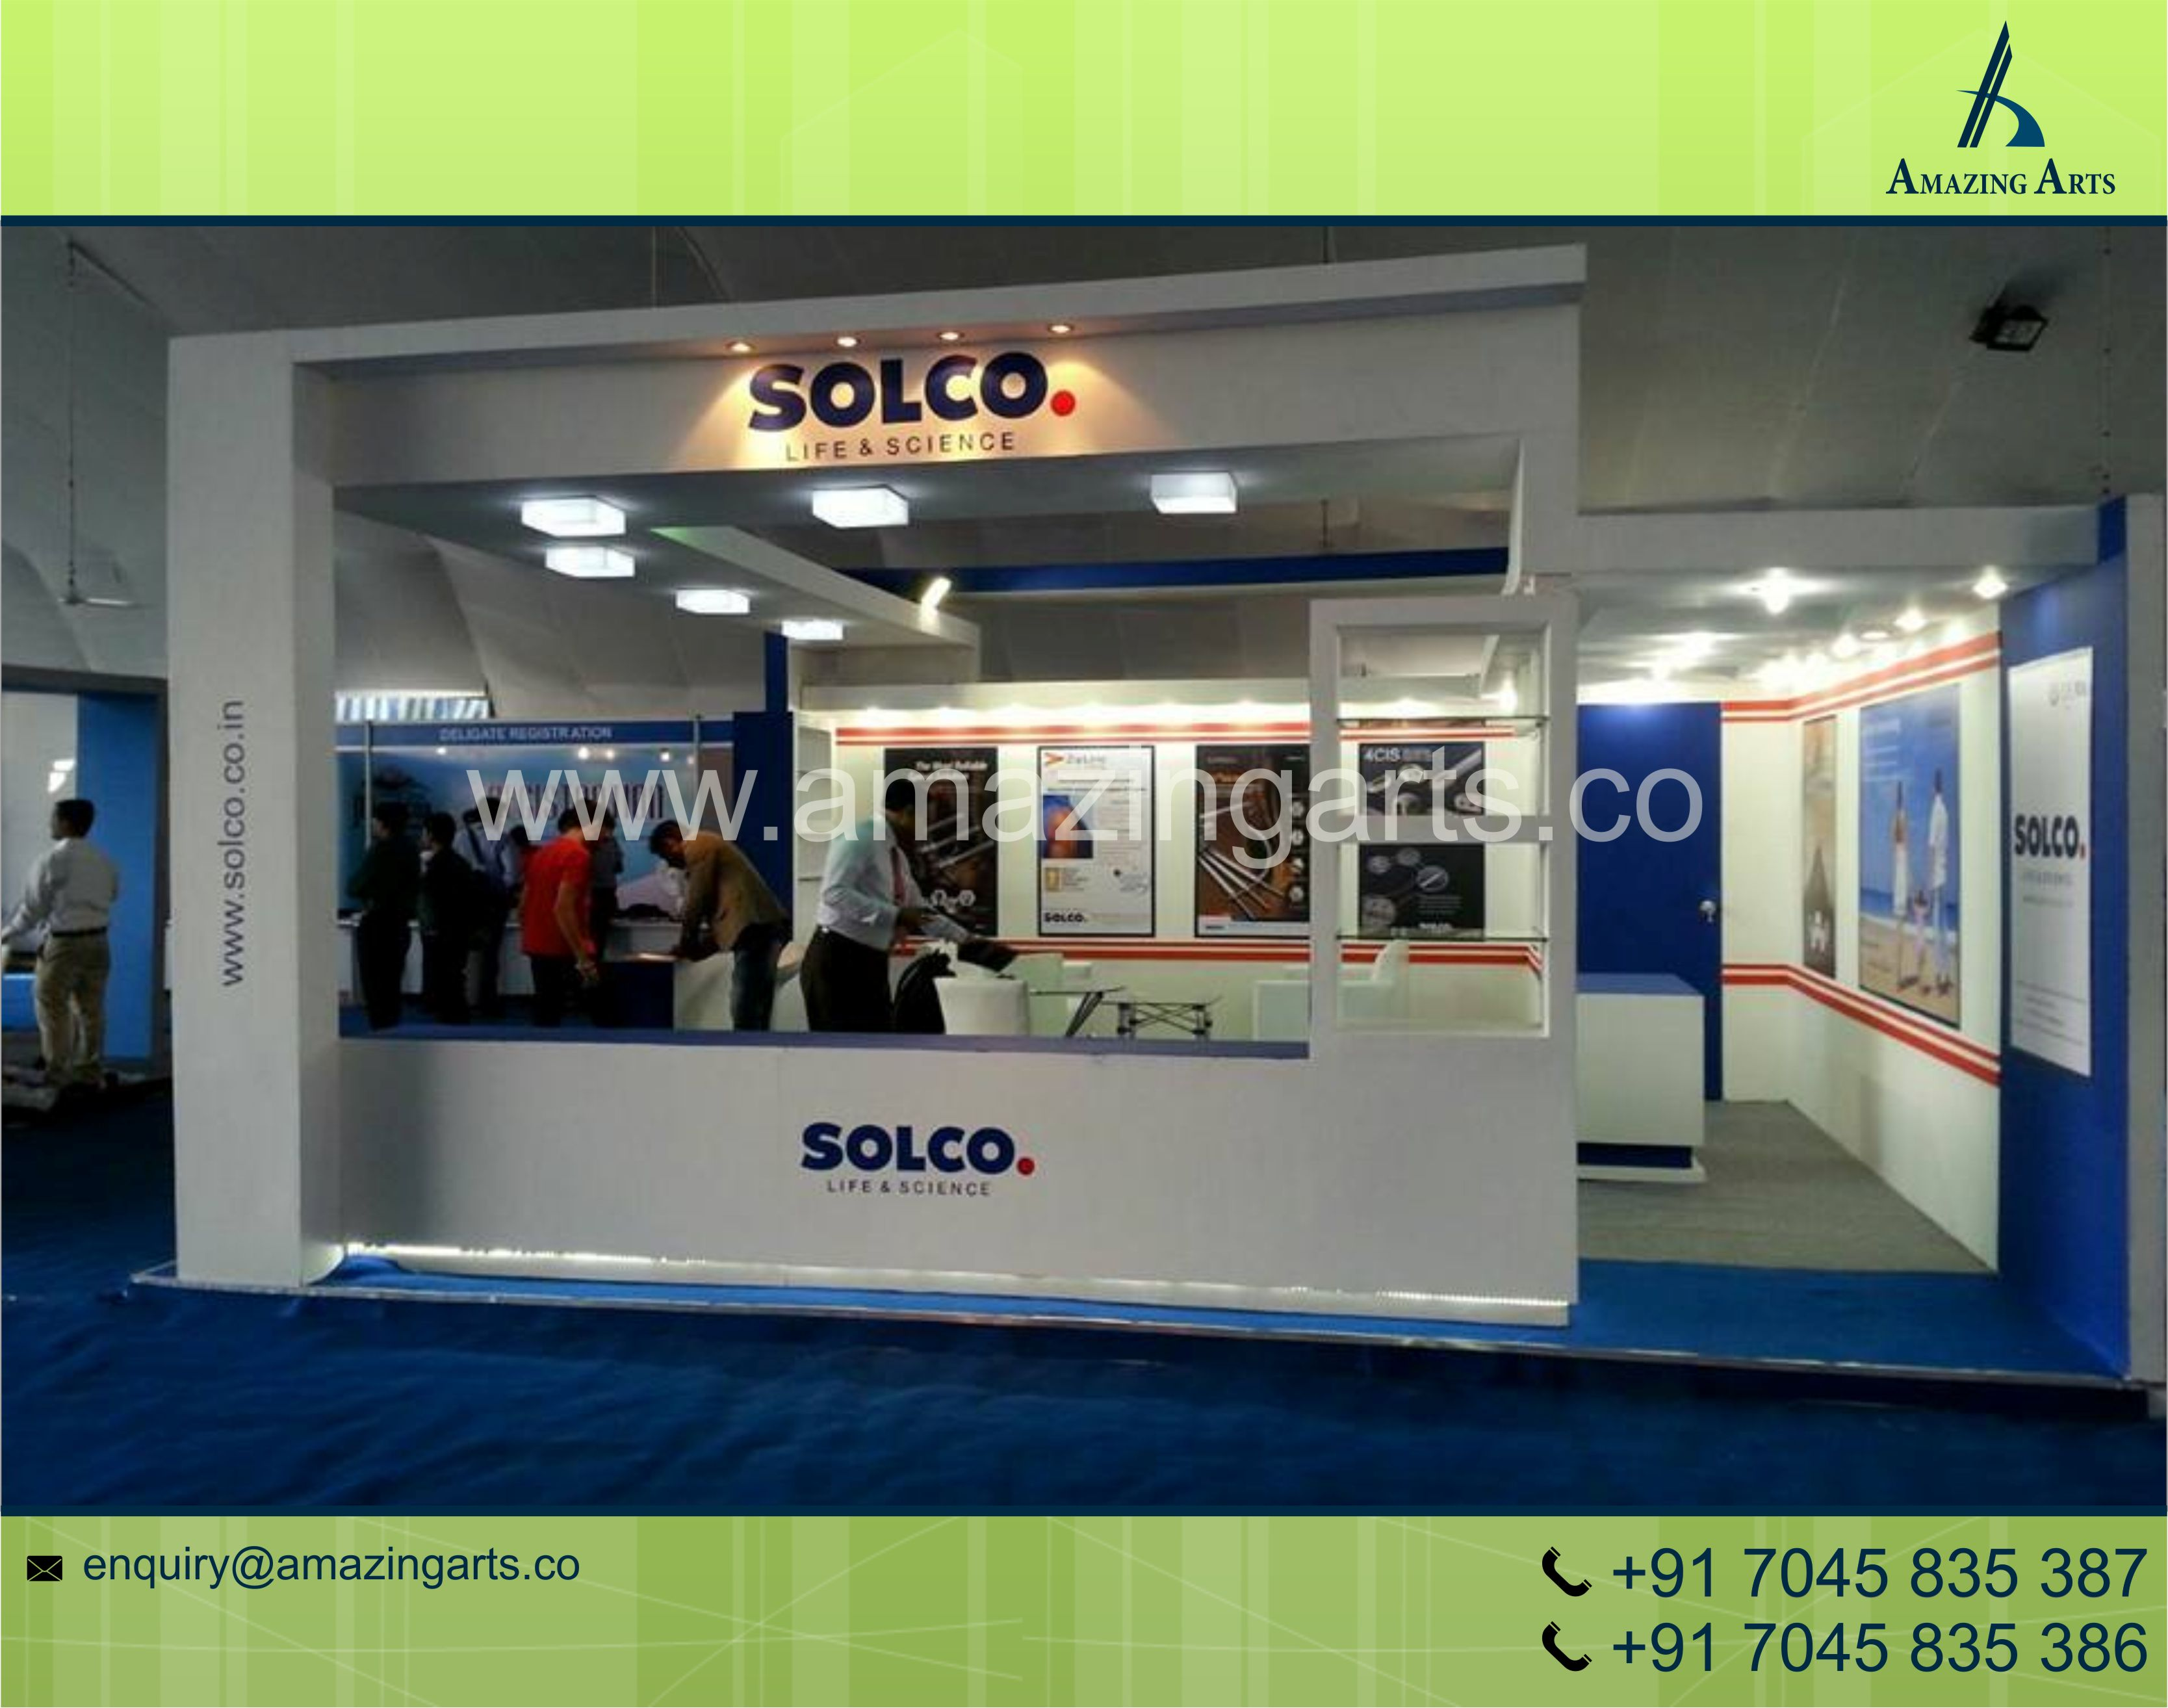 Exhibition Stall Material : Exhibition stall designer stall fabricator amazing arts group